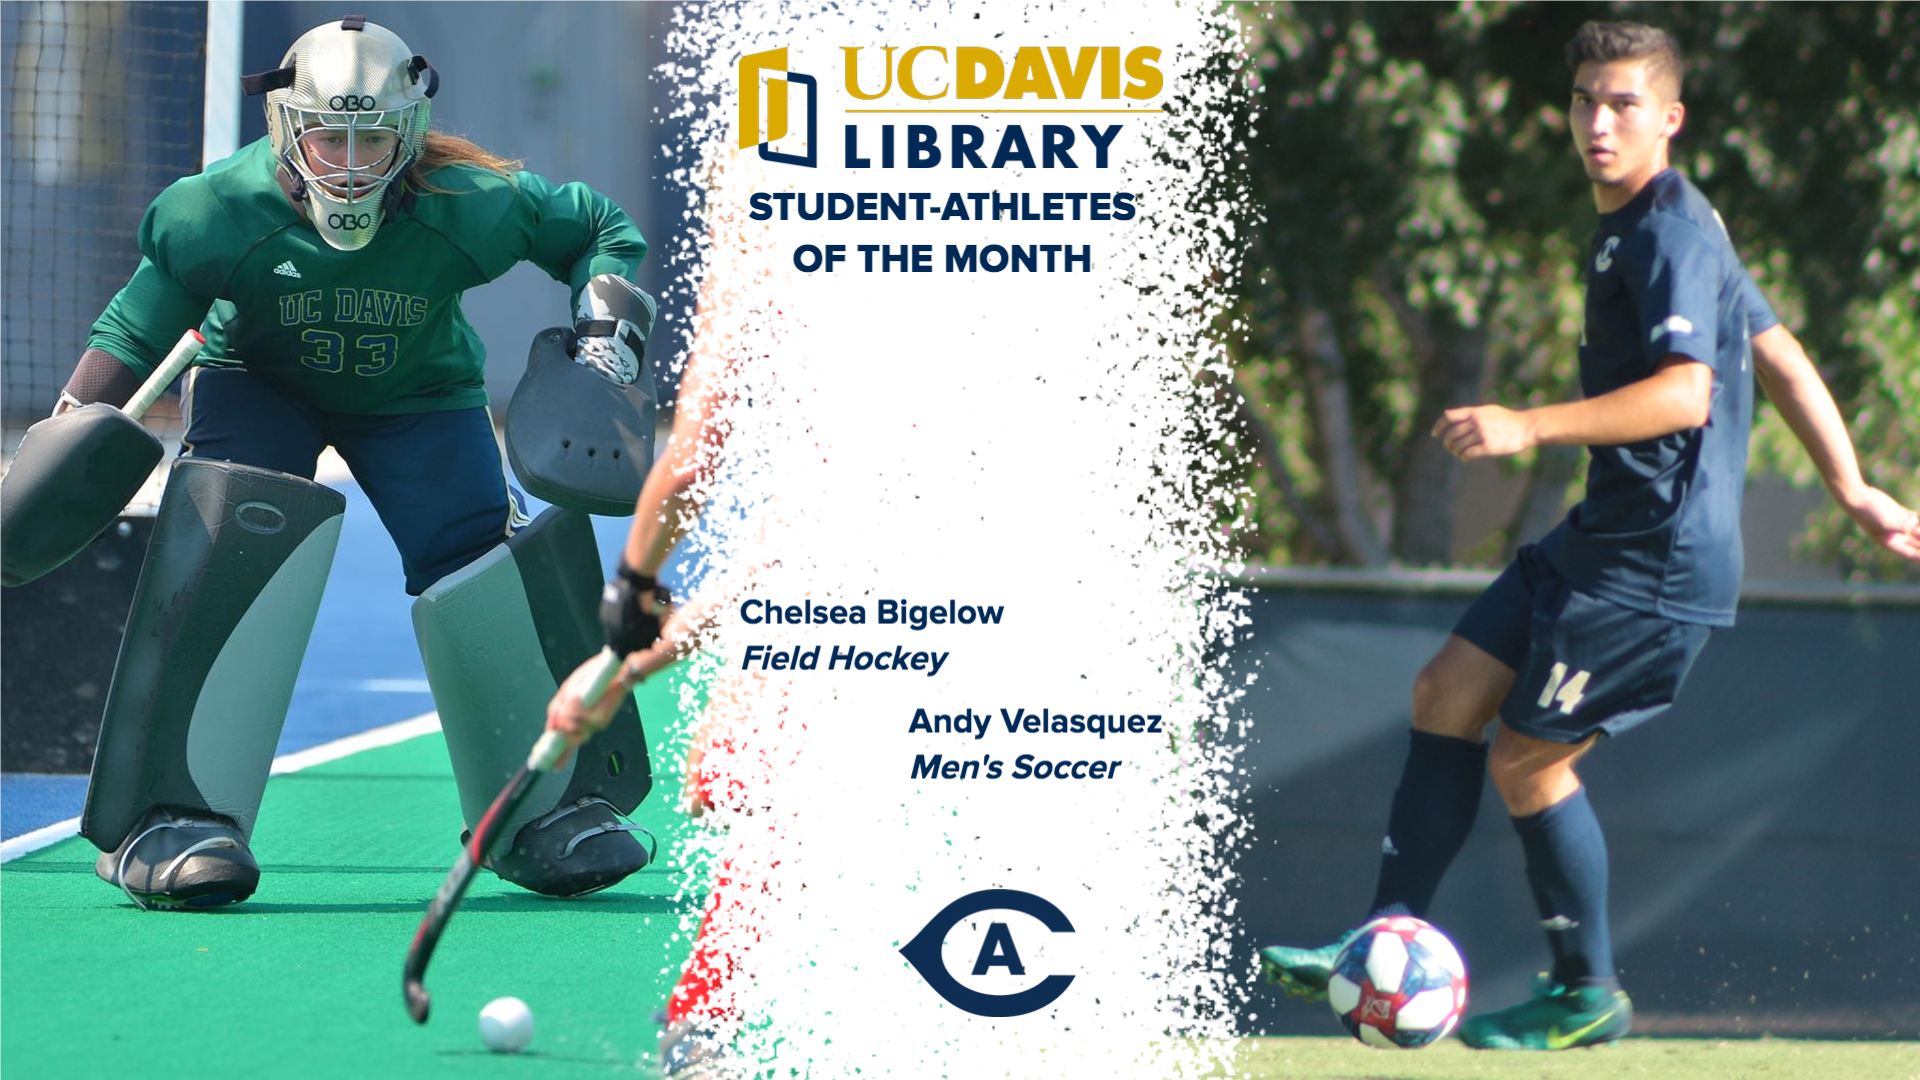 Chelsea Bigelow, Andy Velasquez named inaugural UC Davis Library Student-Athletes of the Month